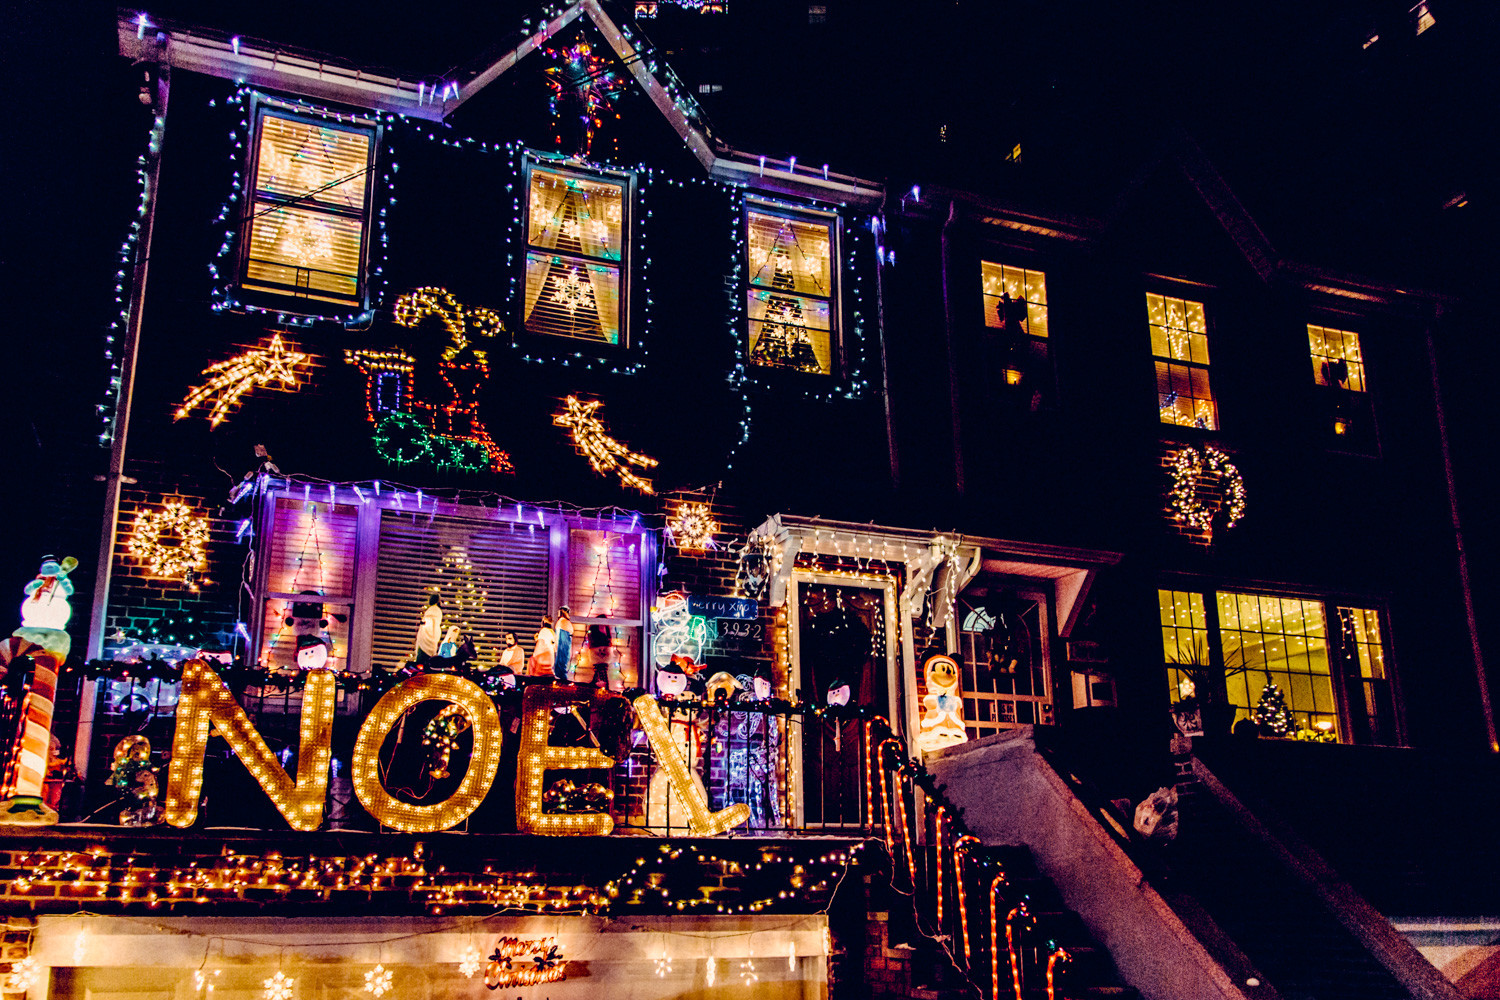 Some houses go all out with Christmas light displays, showing the neighborhood how it's done with elaborate setups. Christmas lights date back to 1882. Inventor Edward Johnson was the first person to put together a string of electric lights. Before that, candles were used to light trees, but that was a huge fire hazard.